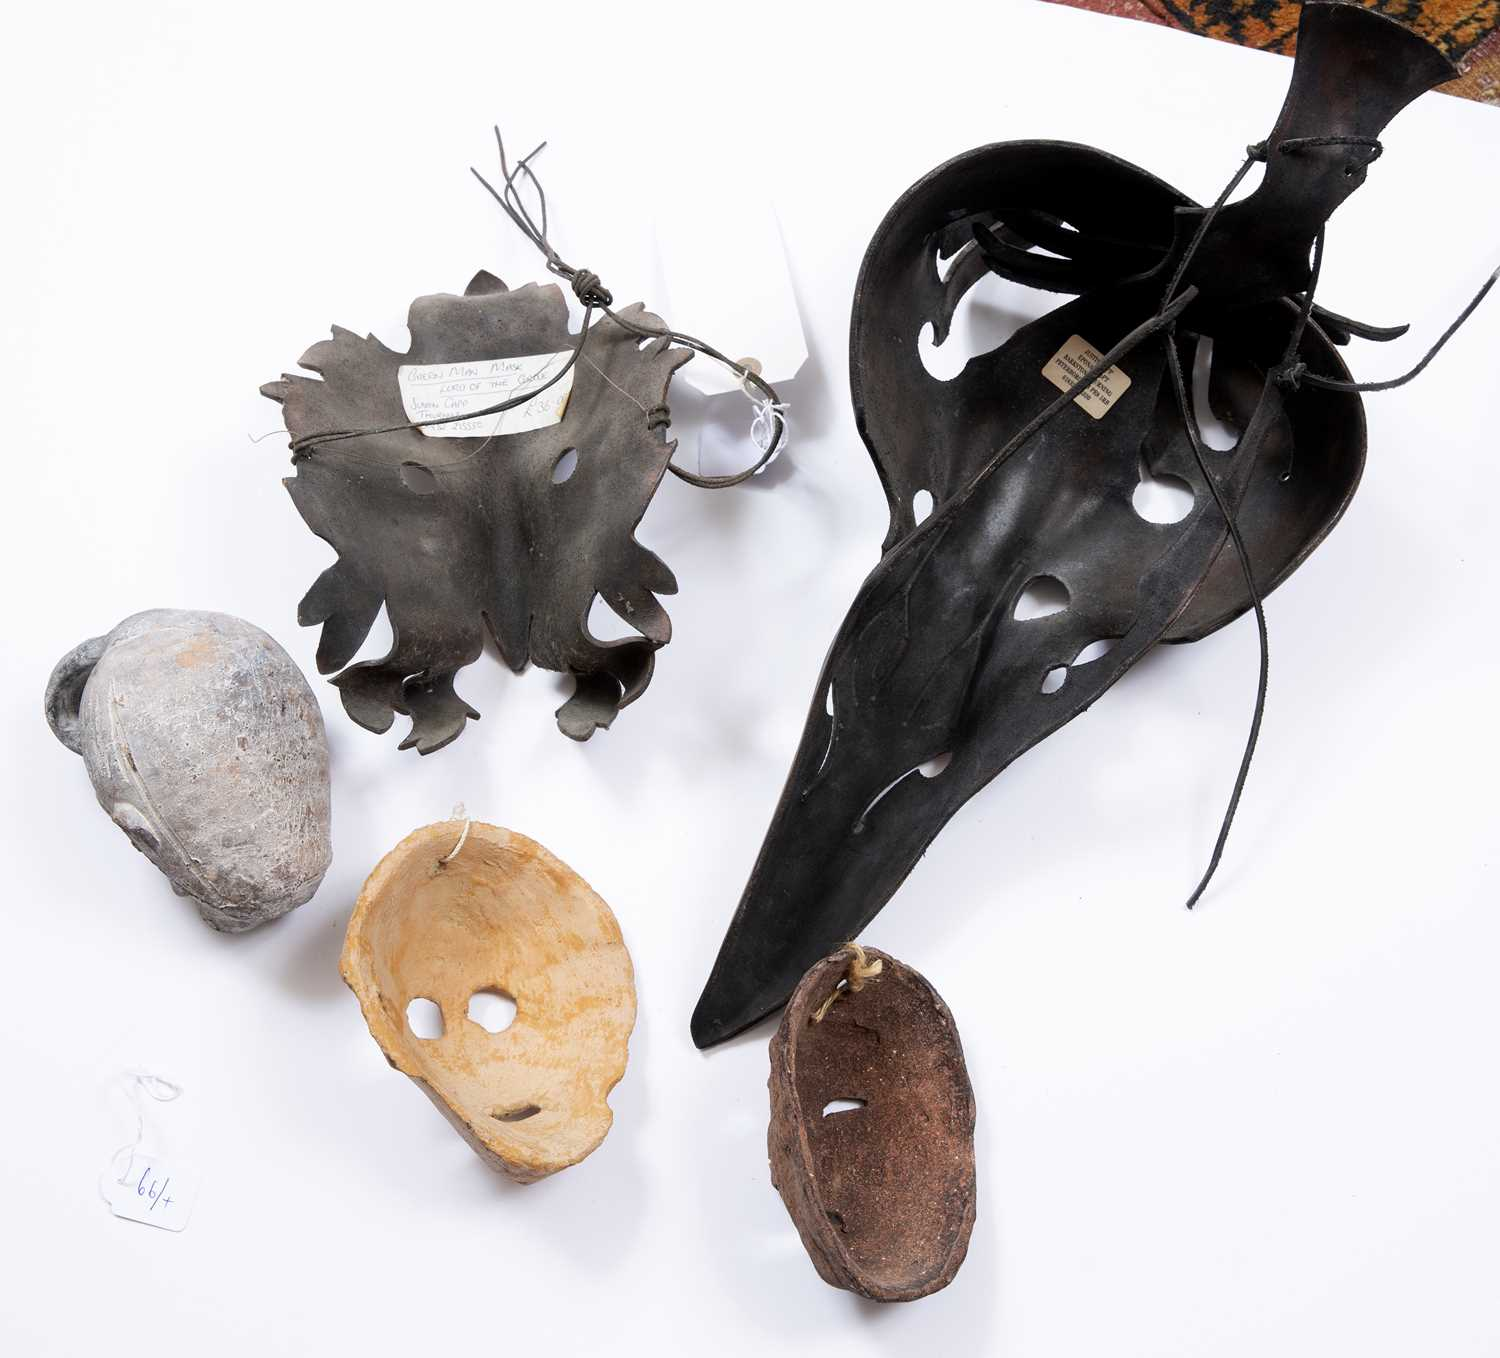 Capp, Justin - A leather 'Green Man' mask, another of horse like creature form, two pottery face - Image 2 of 2